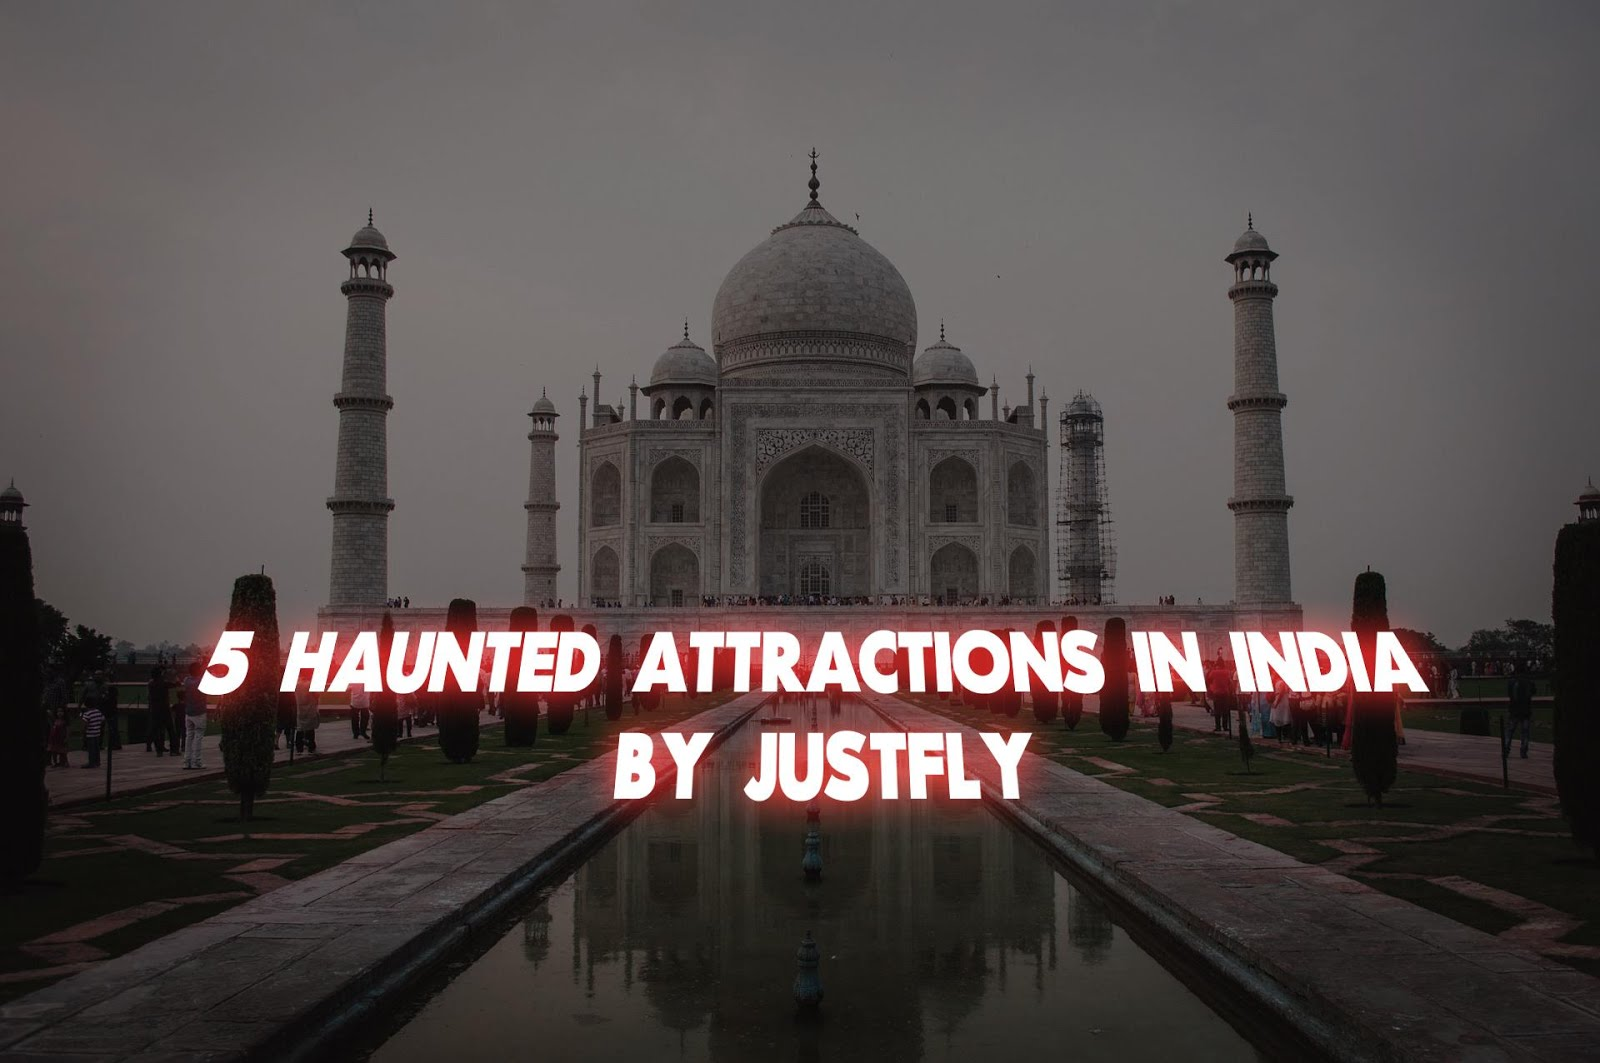 5 haunted attractions in India